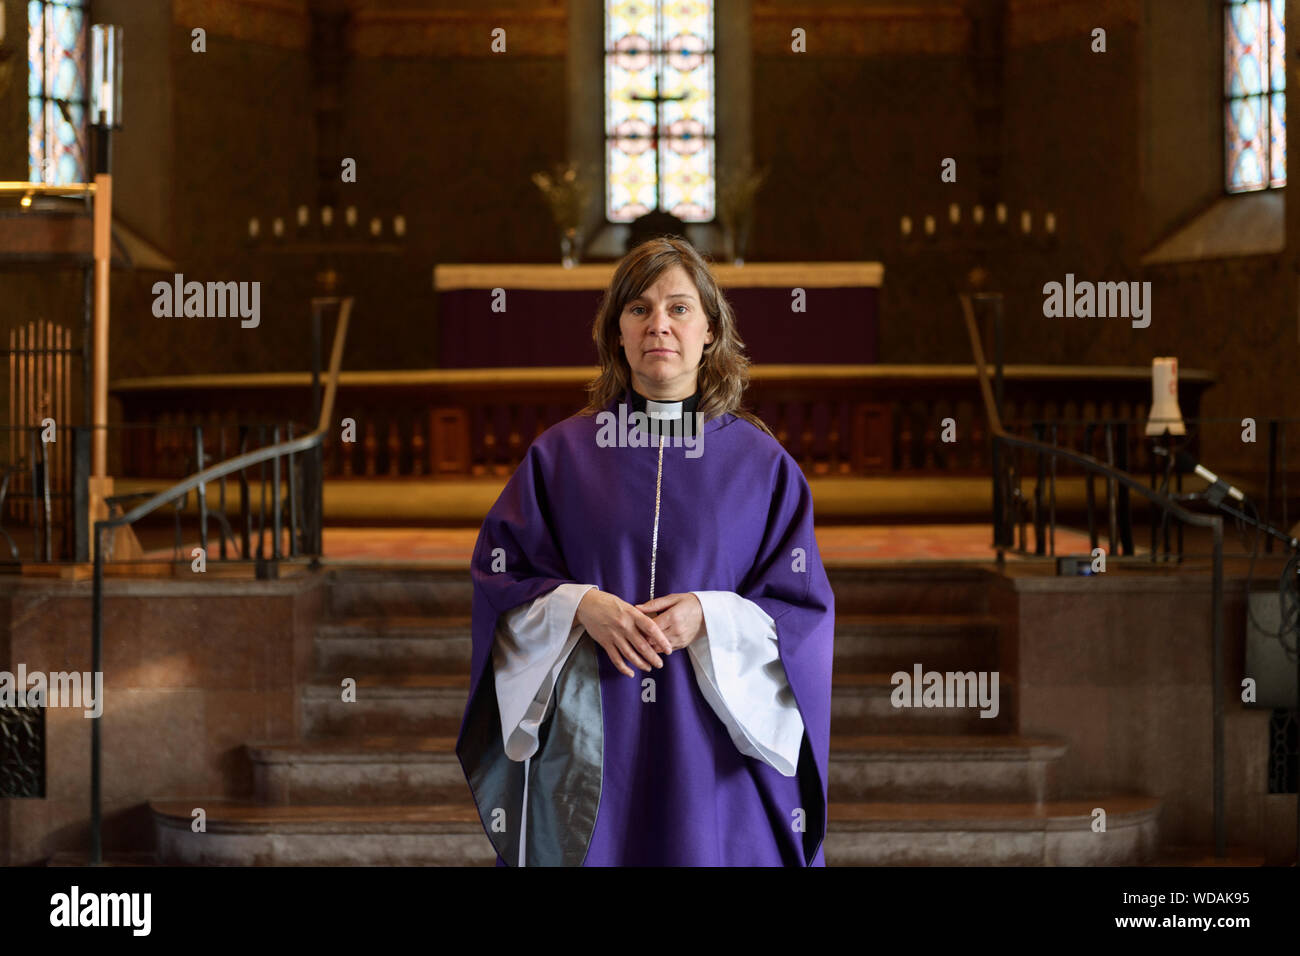 Portrait Of Priest In Purple Robes In Church Stock Photo Alamy